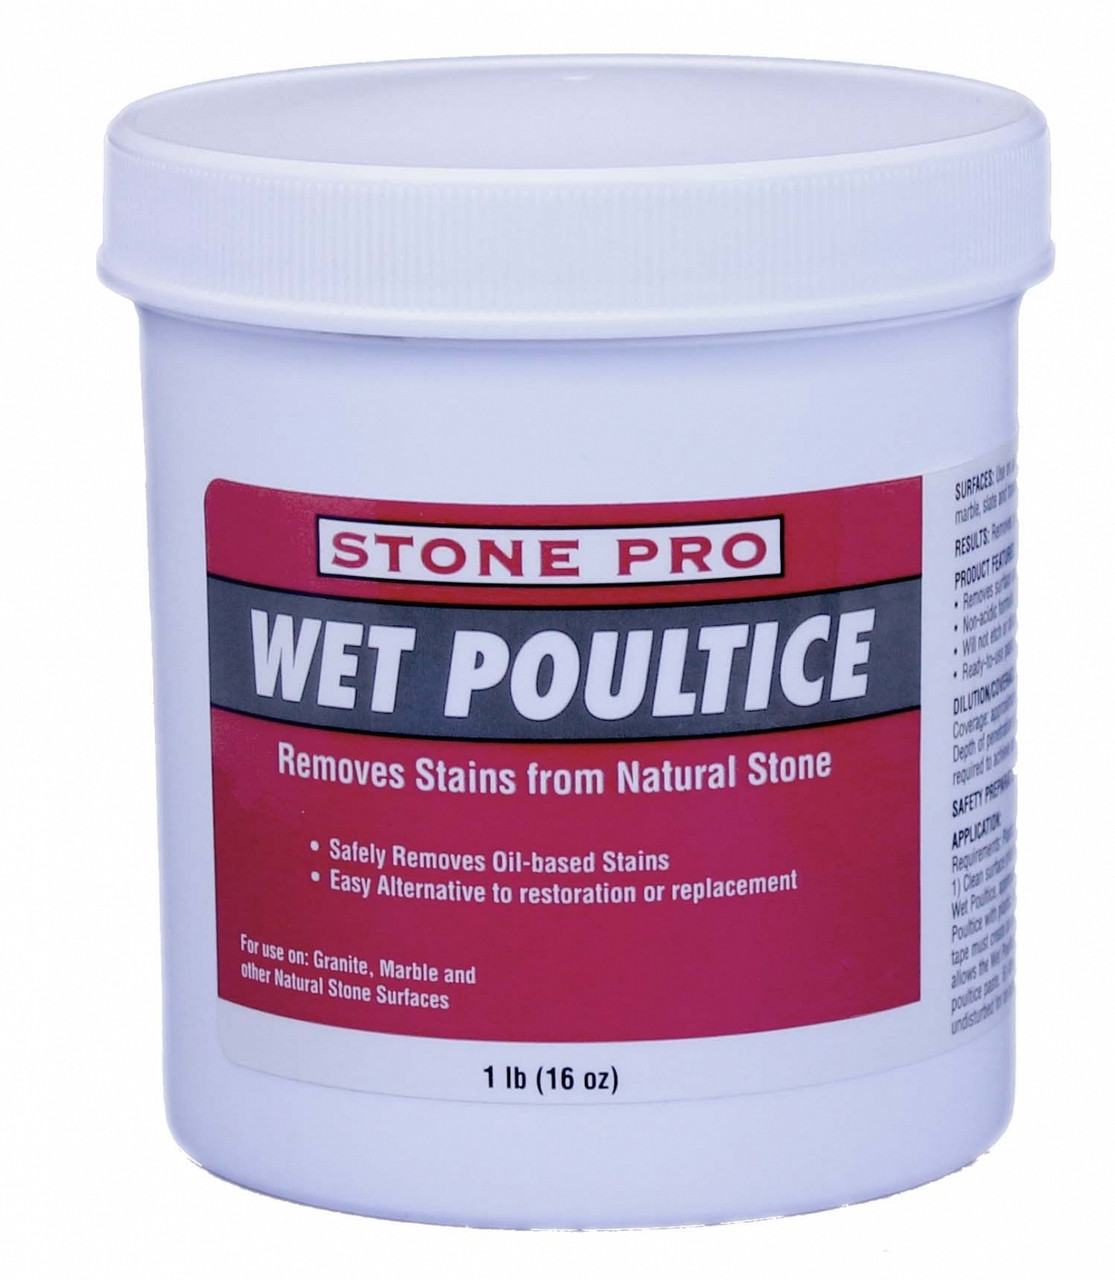 Concrete Stain Remover >> Stone Pro Wet Poultice Stain Remover